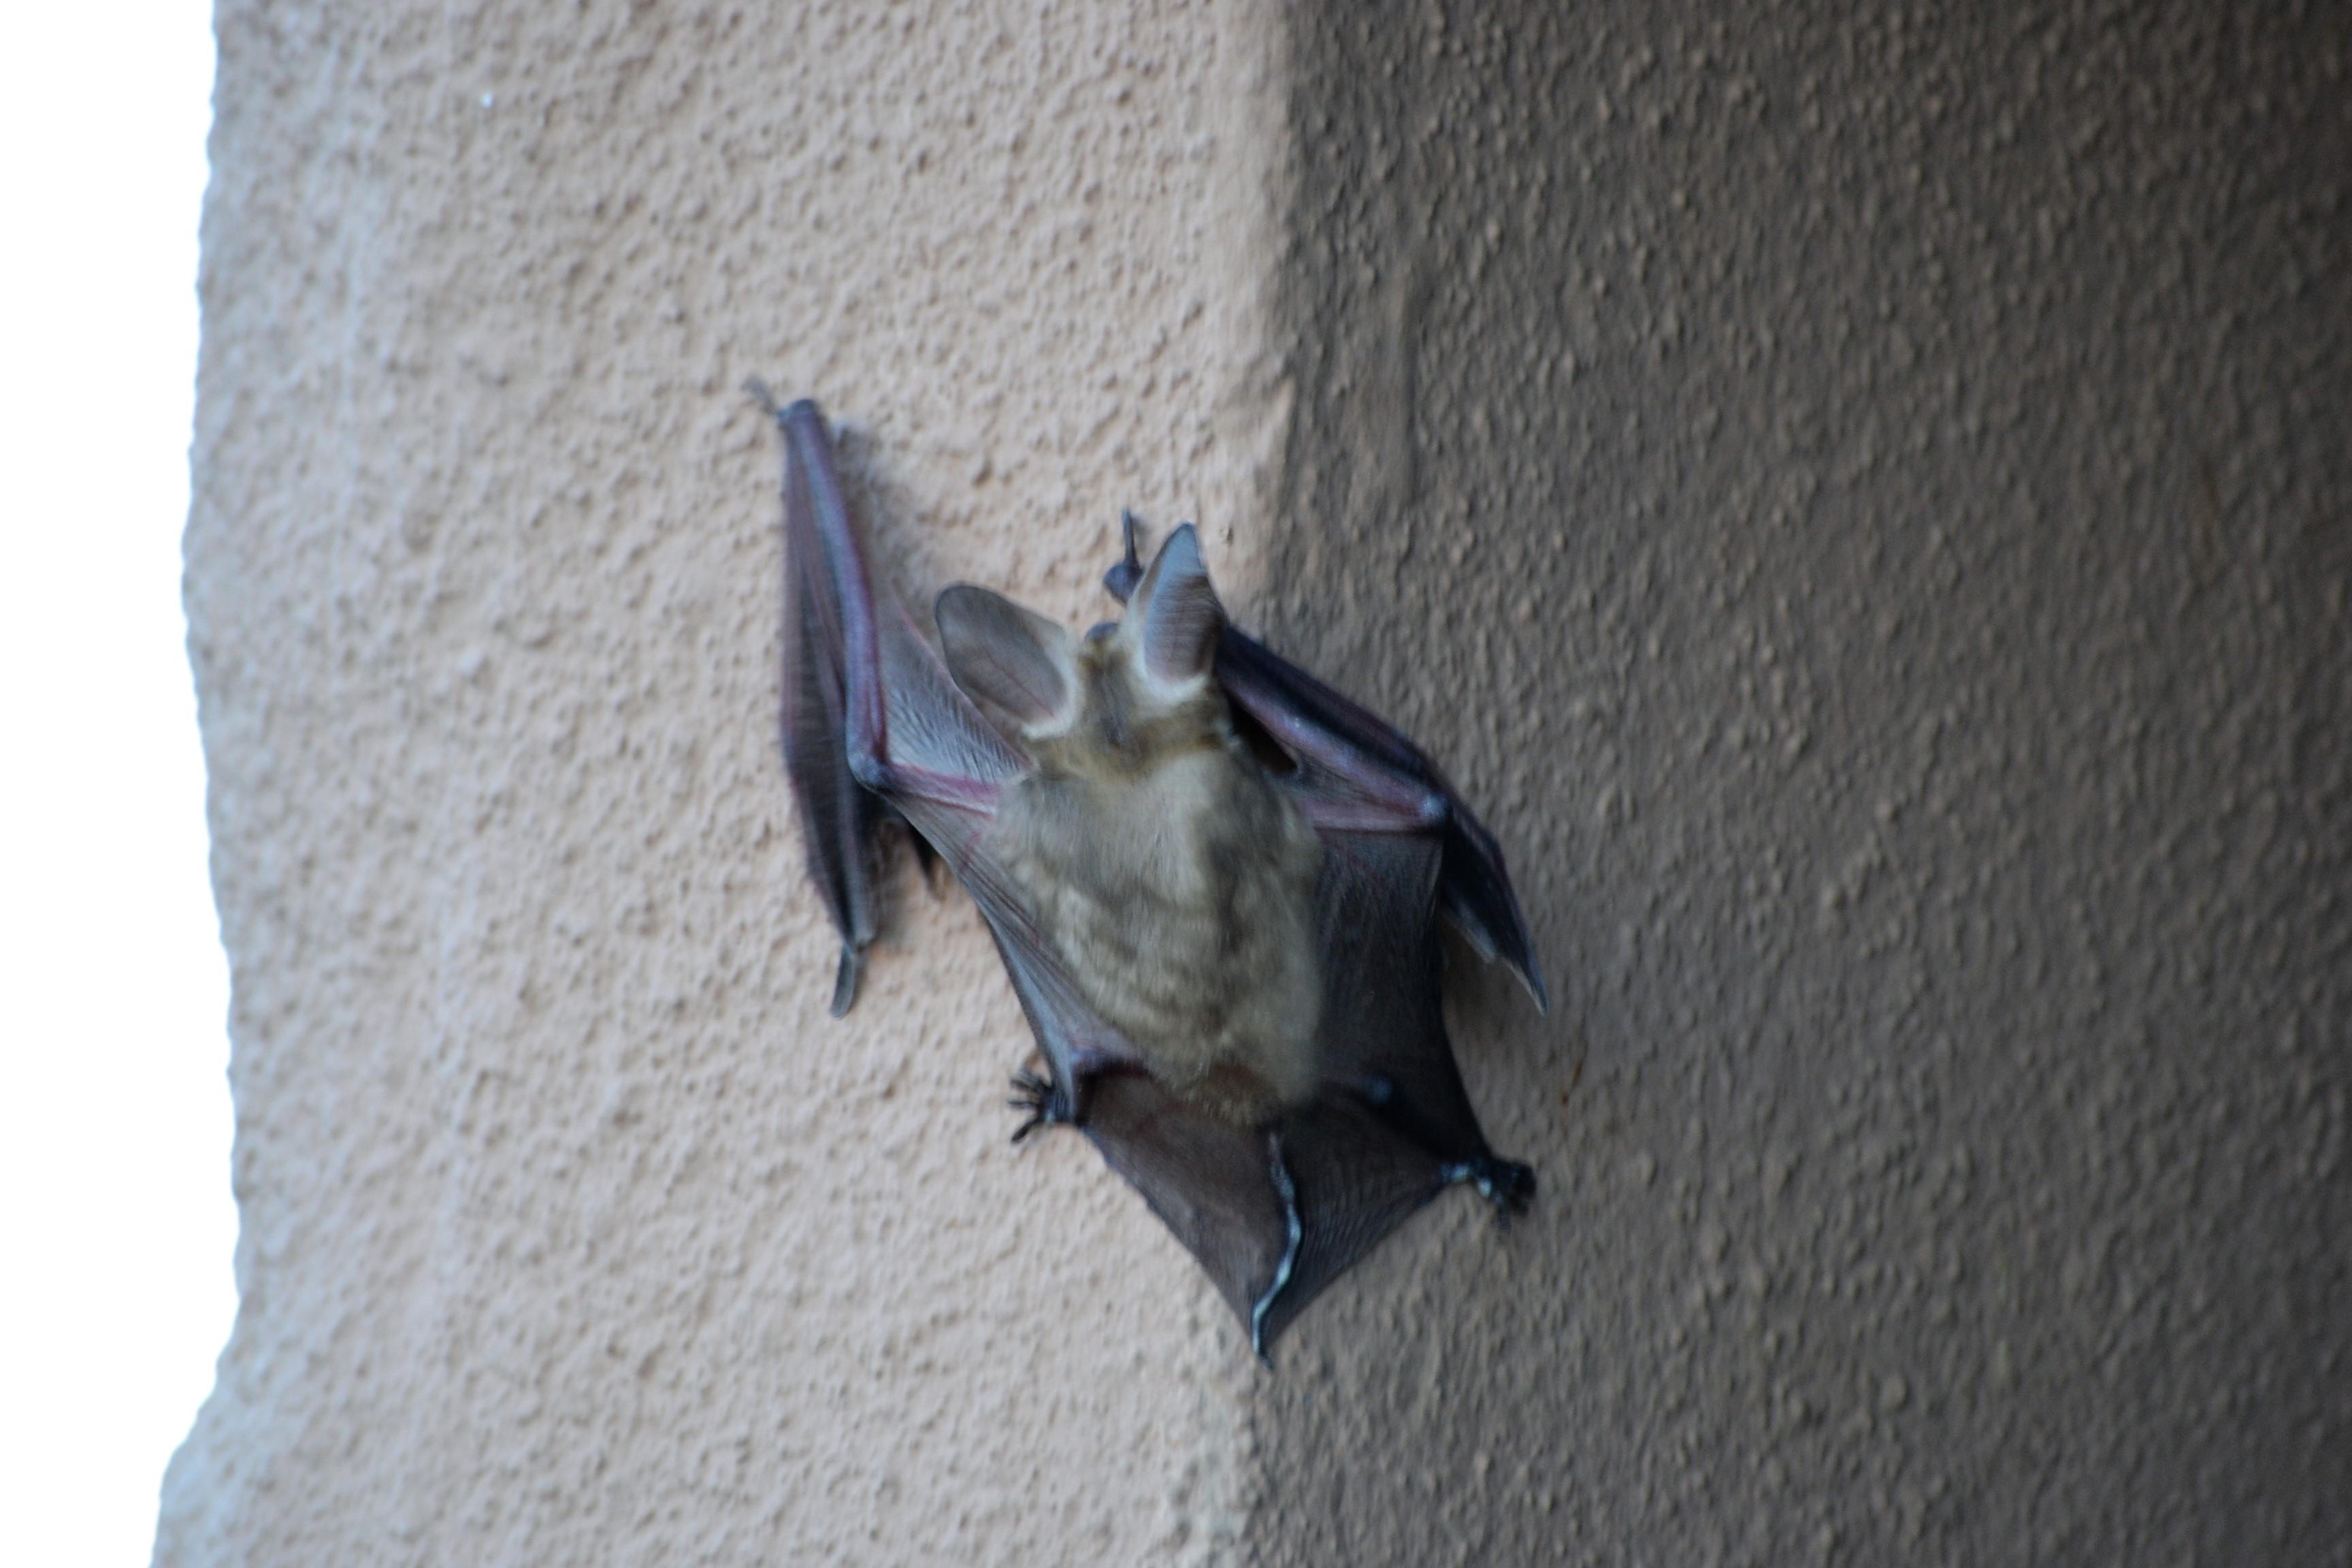 DSC_0007Bat Closeup